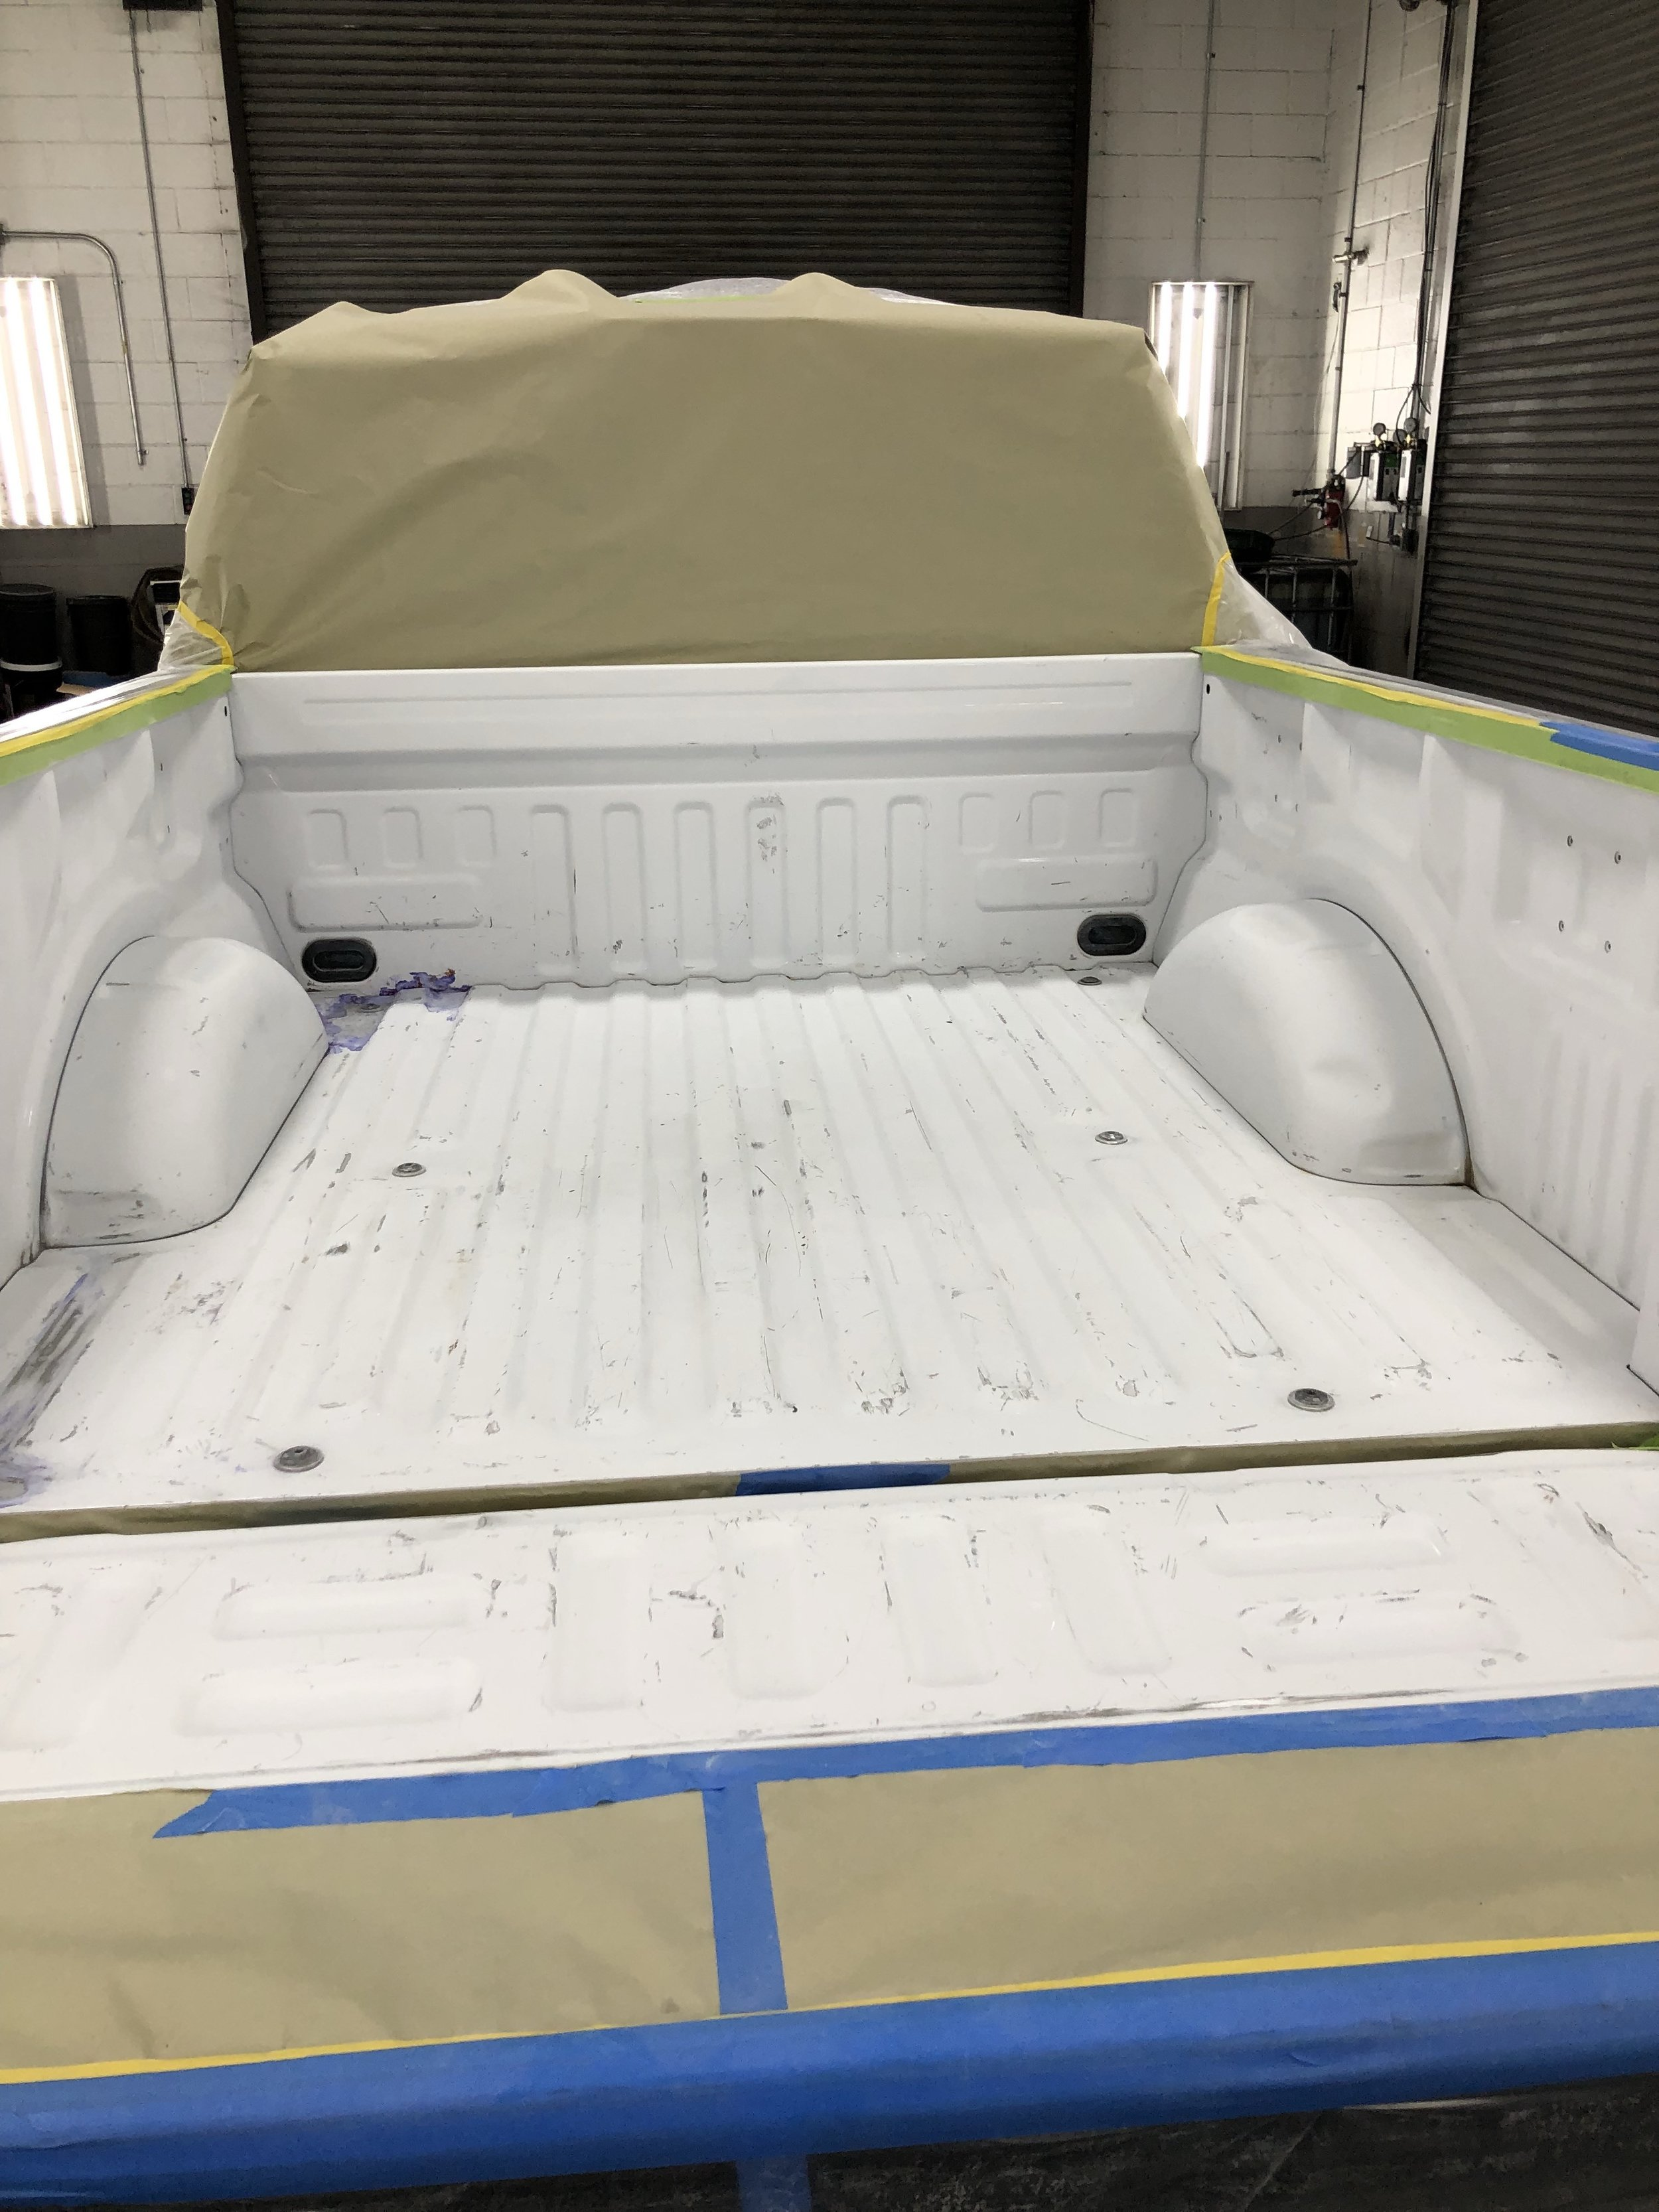 Scuffed - Bed has been scuffed and wiped down, ready to spray.